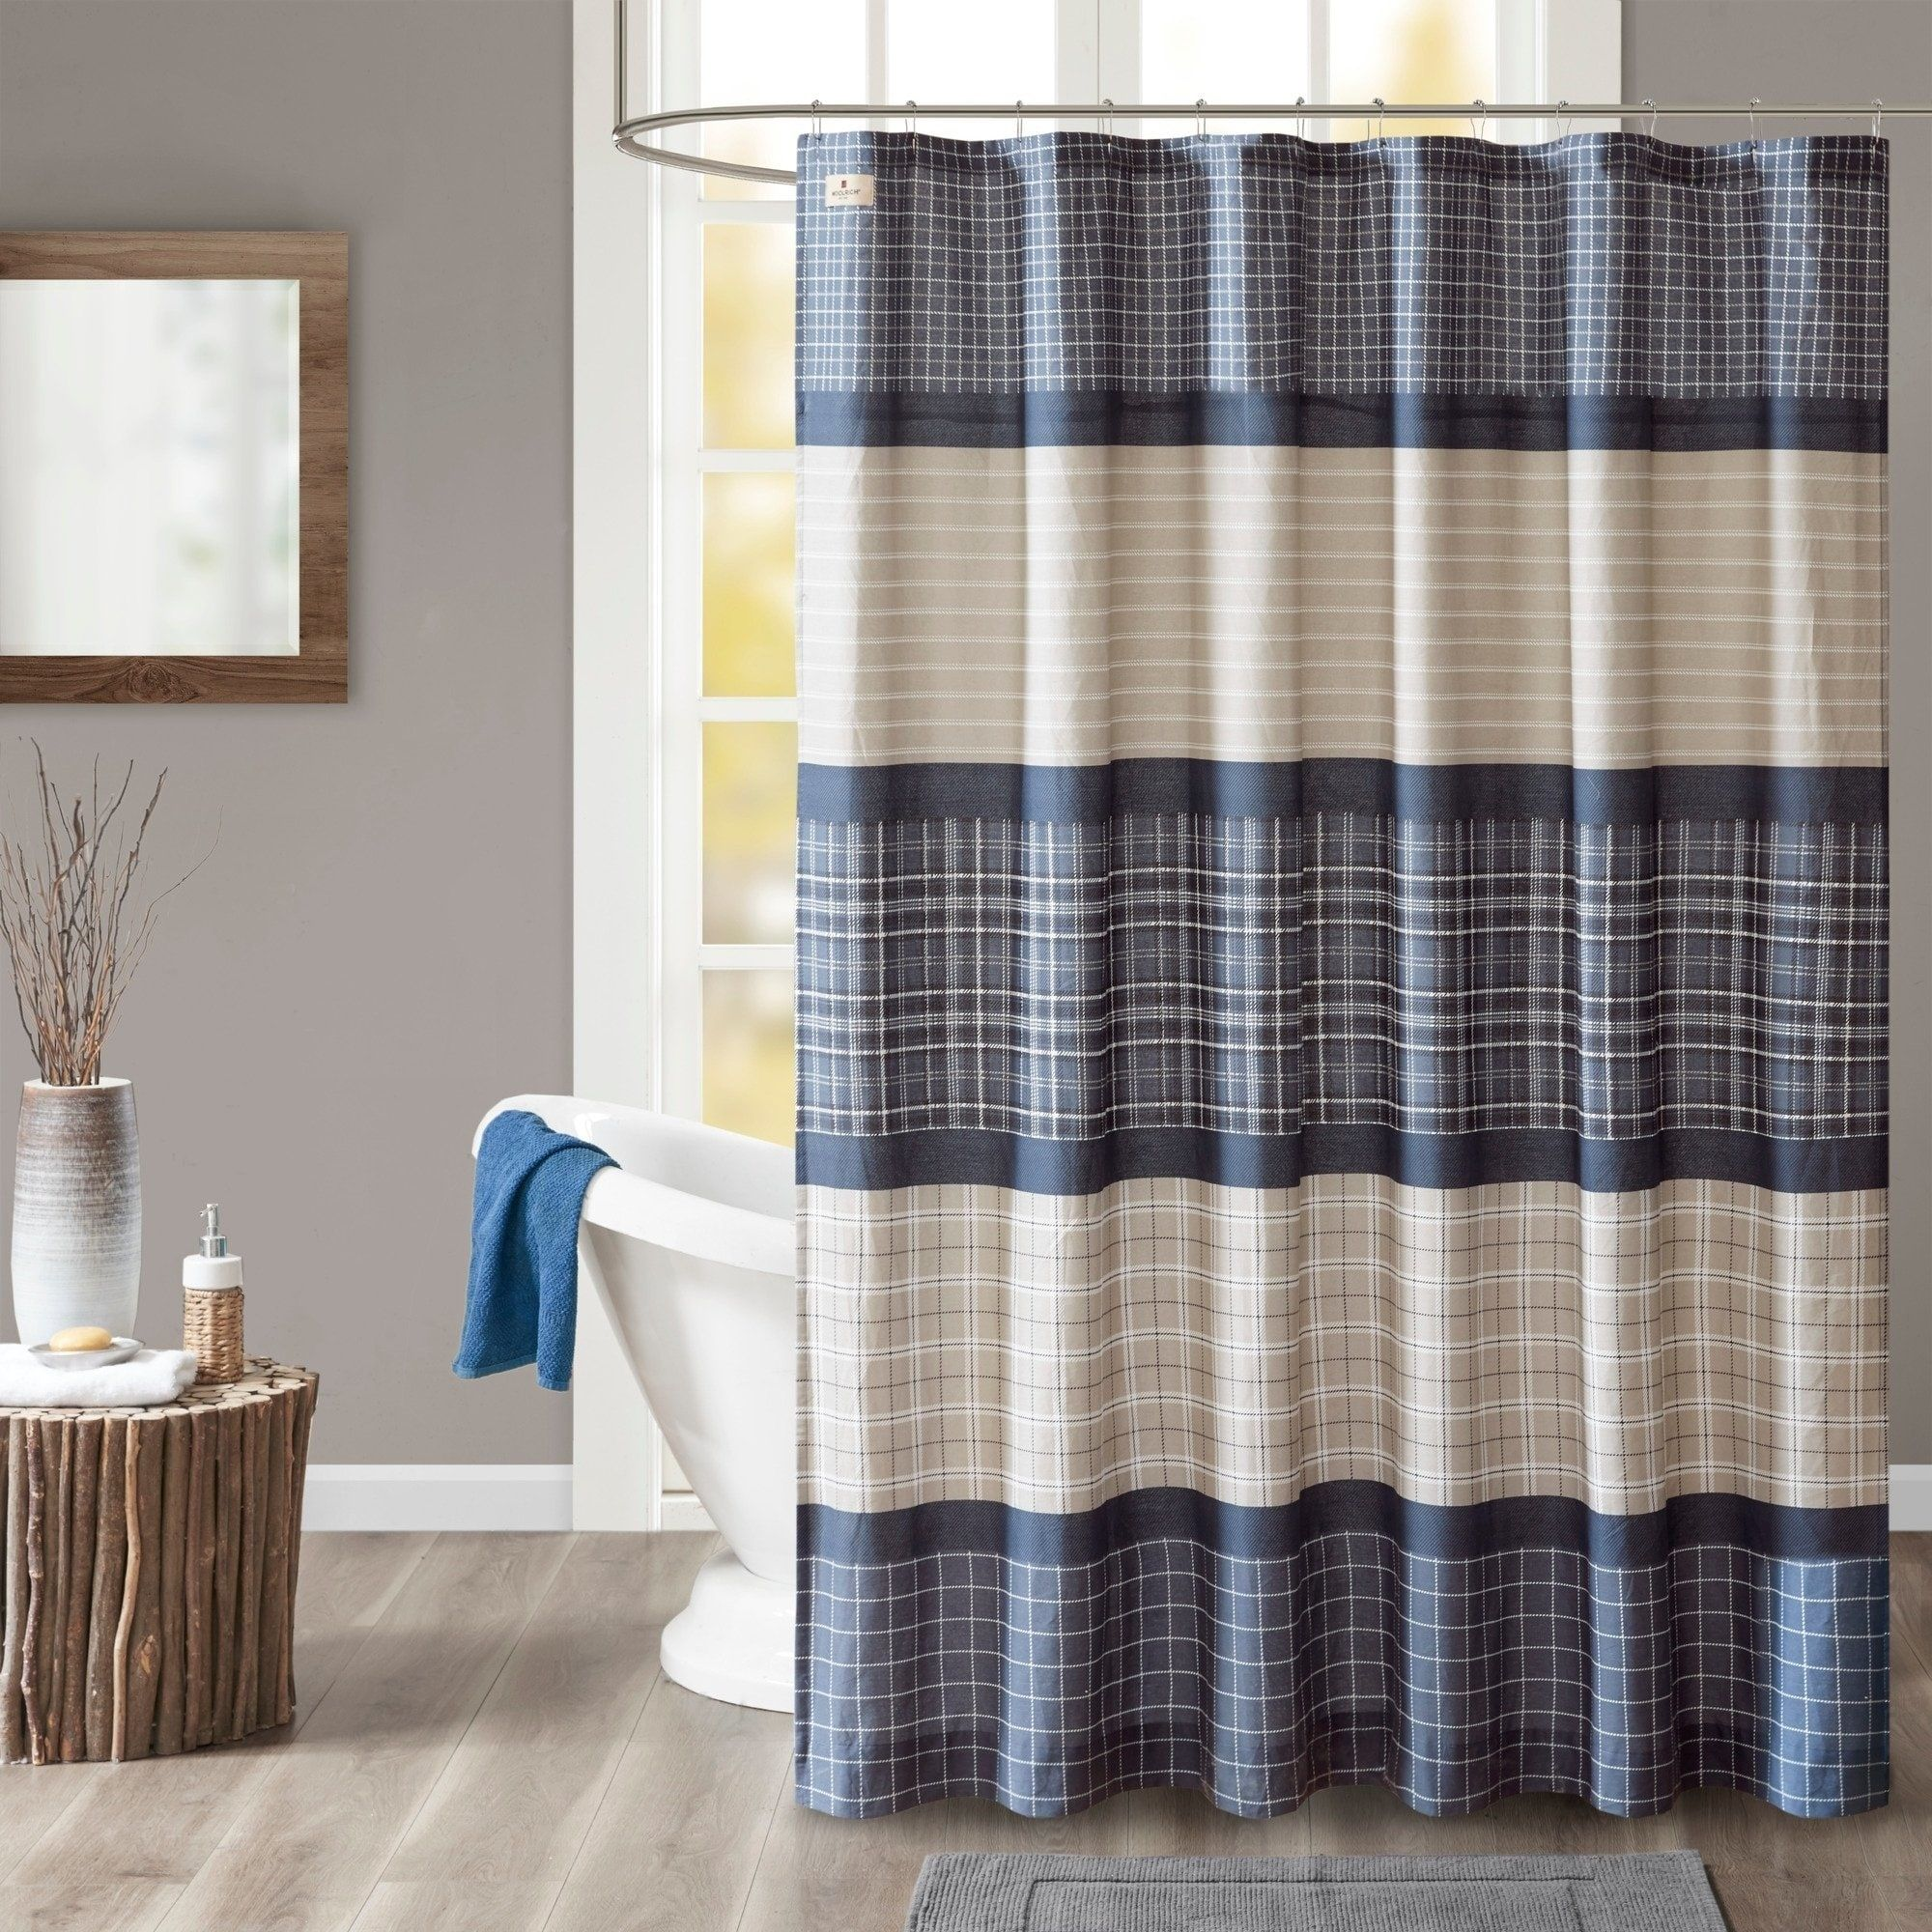 Woolrich Flagship Blue Grey Cotton Printed Plaid Shower Curtain Plaid Shower Curtain Curtains Curtain Lights